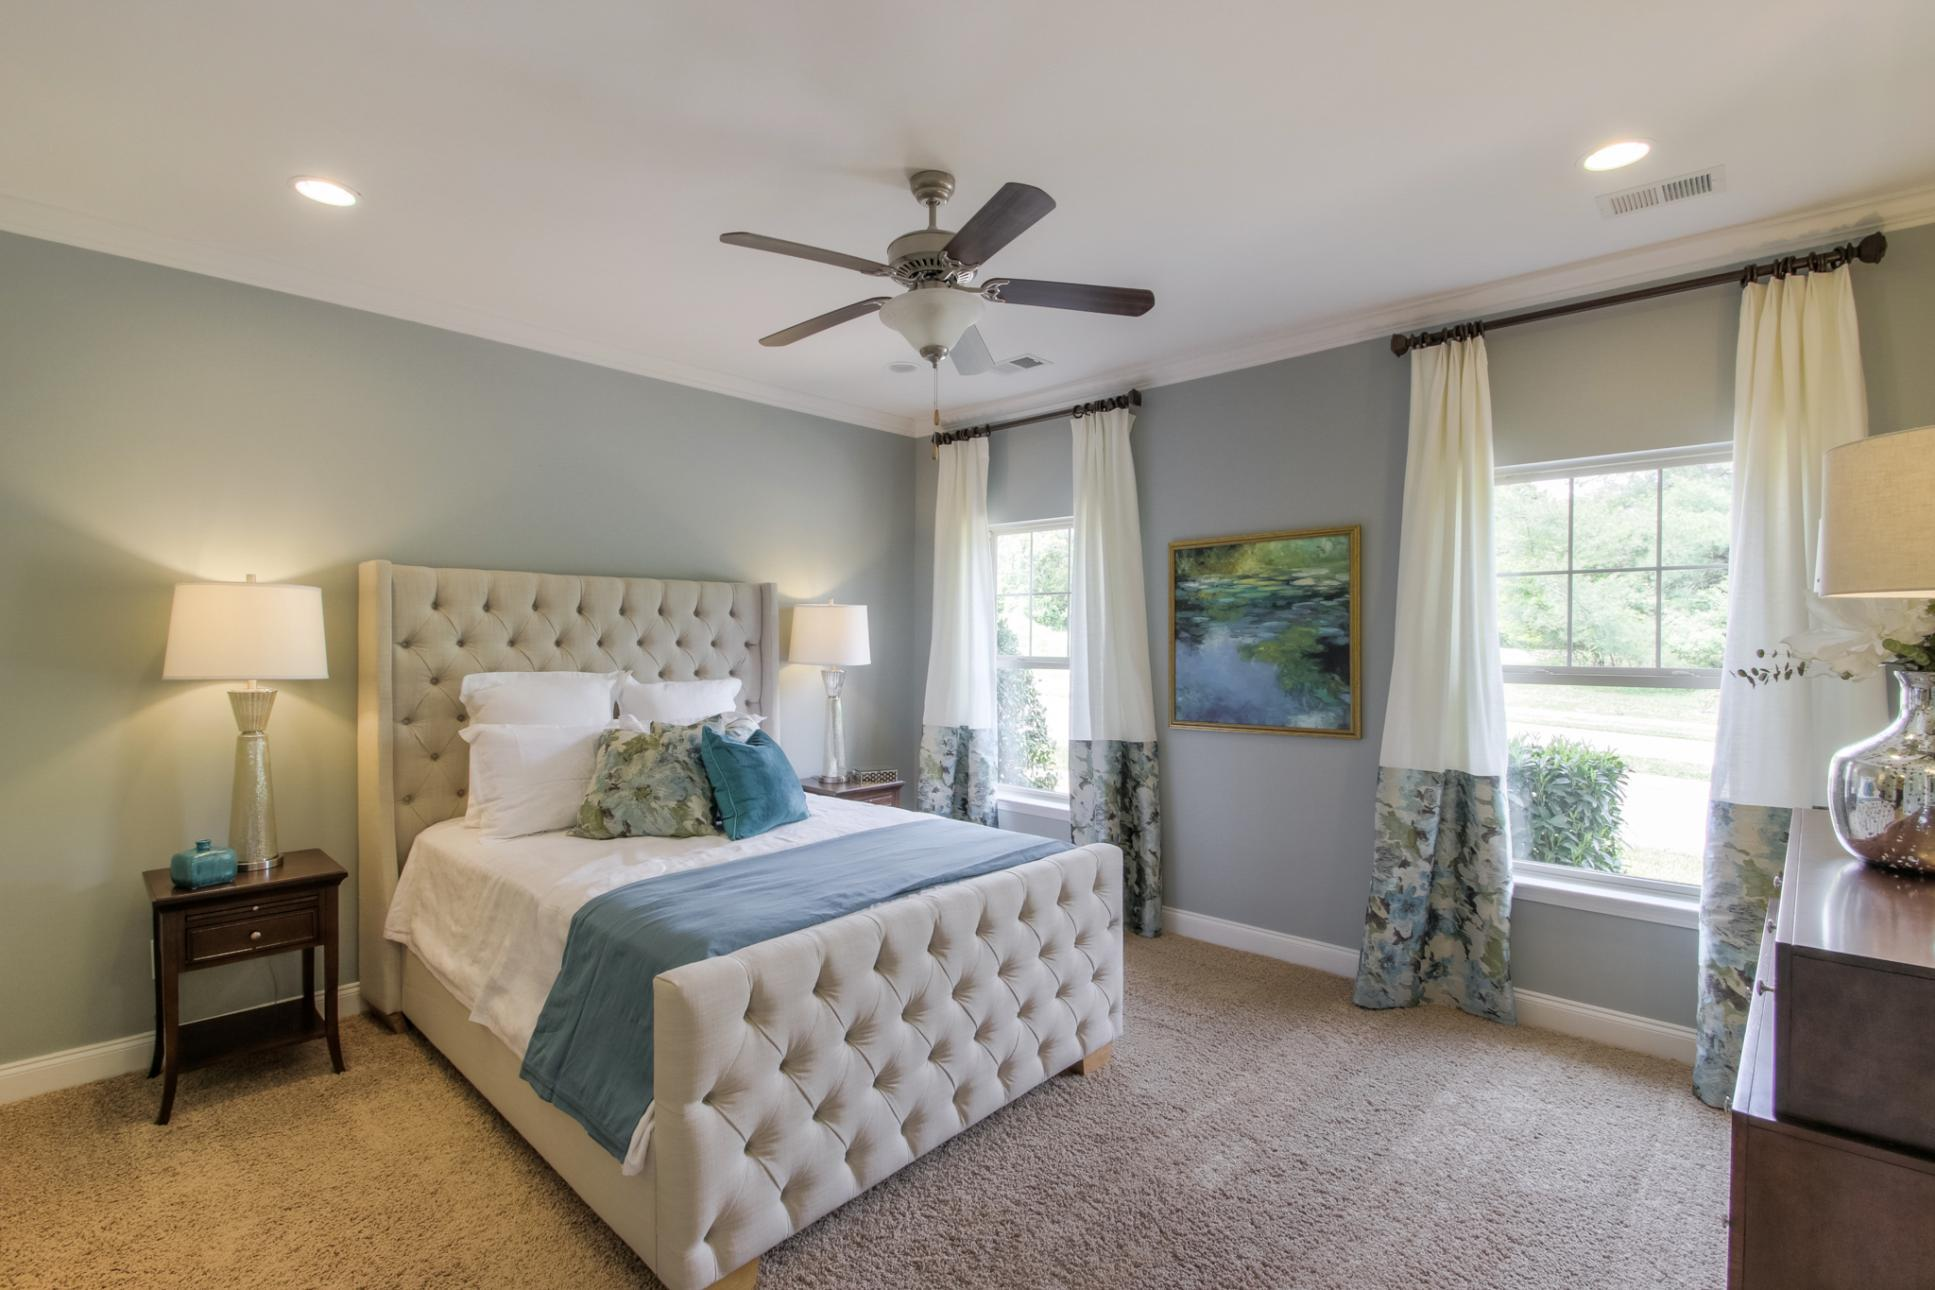 Bedroom featured in The Everleigh Courtyard Cottage By Goodall Homes in Nashville, TN